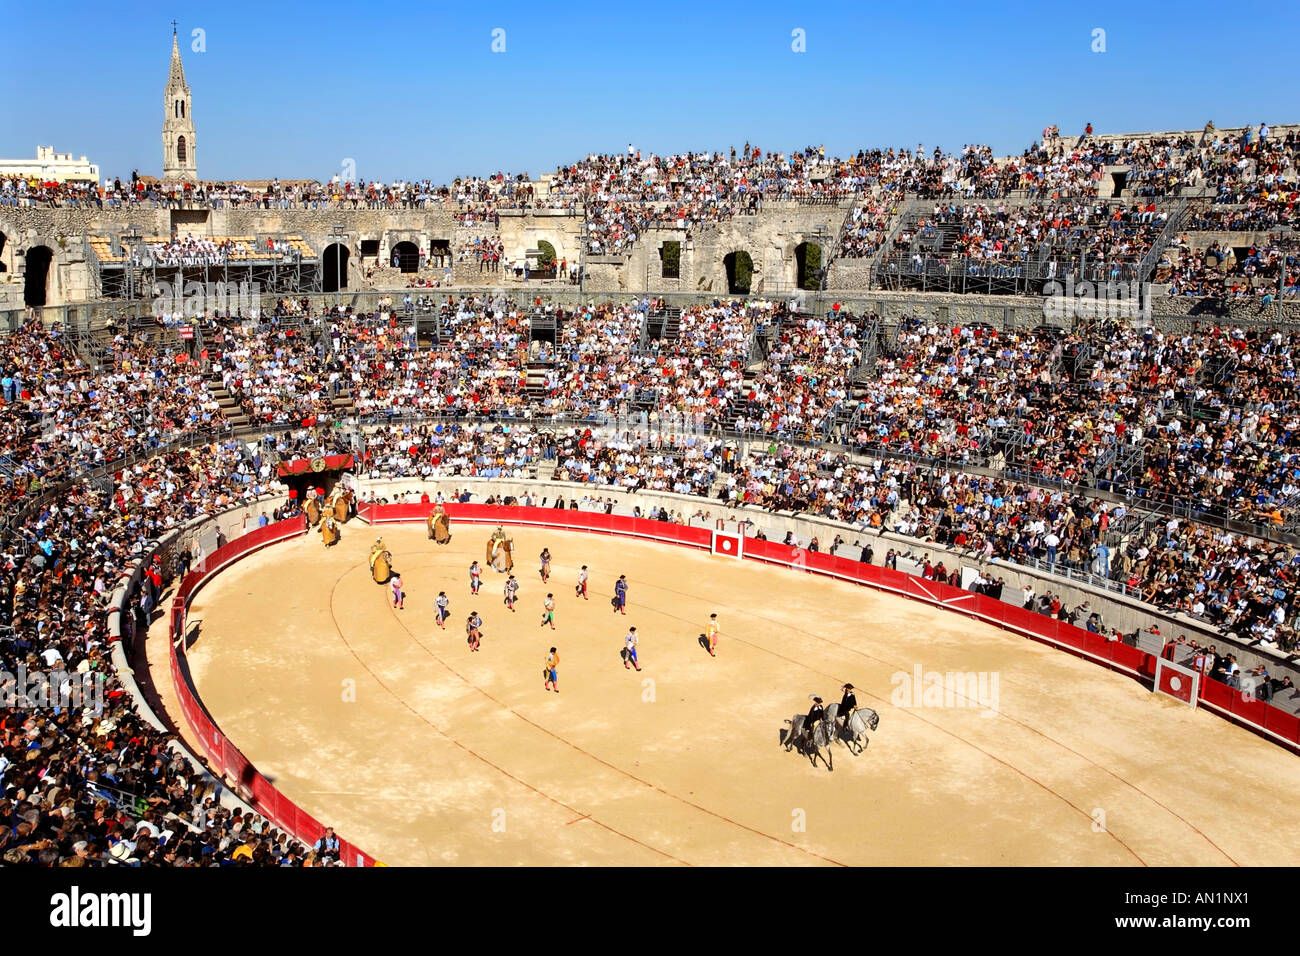 the arena of nimes france stock photo 8790368 alamy. Black Bedroom Furniture Sets. Home Design Ideas